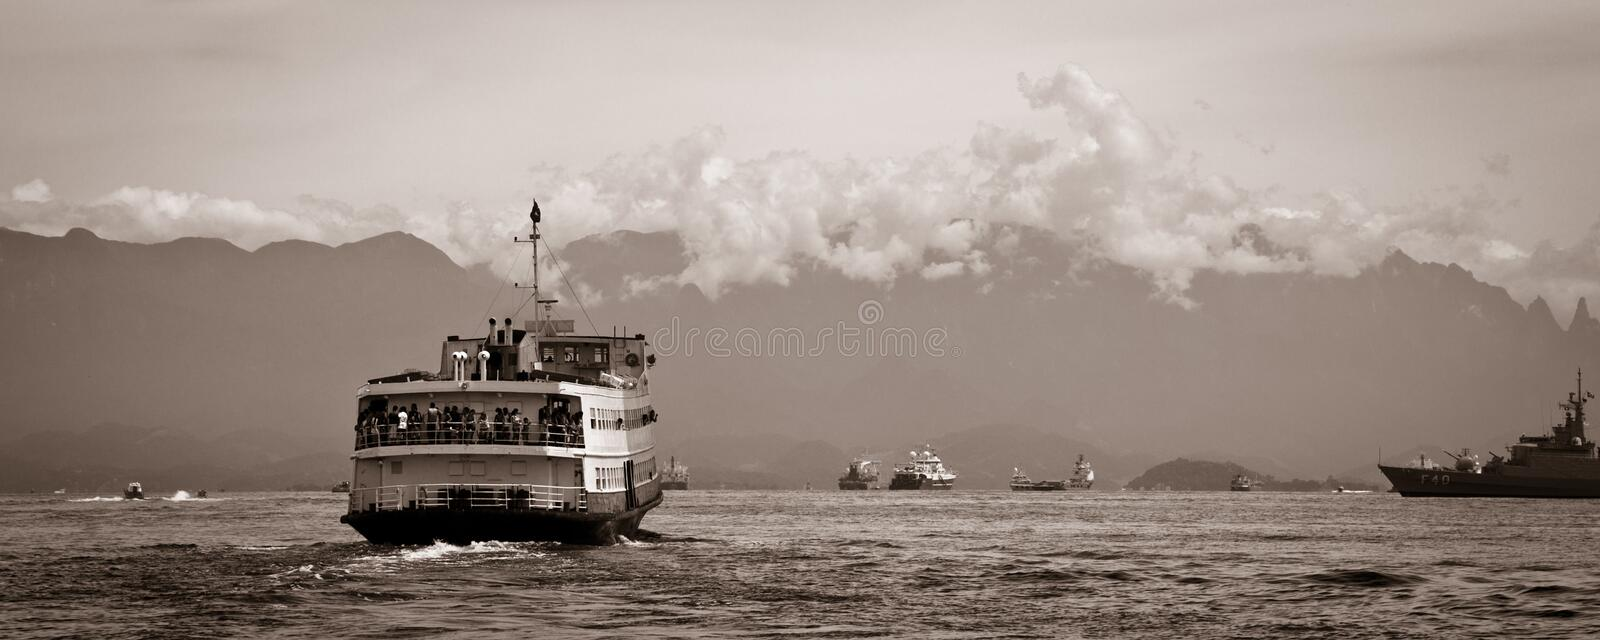 Barca Rio-Niteroi Ferry Boat On Baia De Guanabara Royalty Free Stock Photos